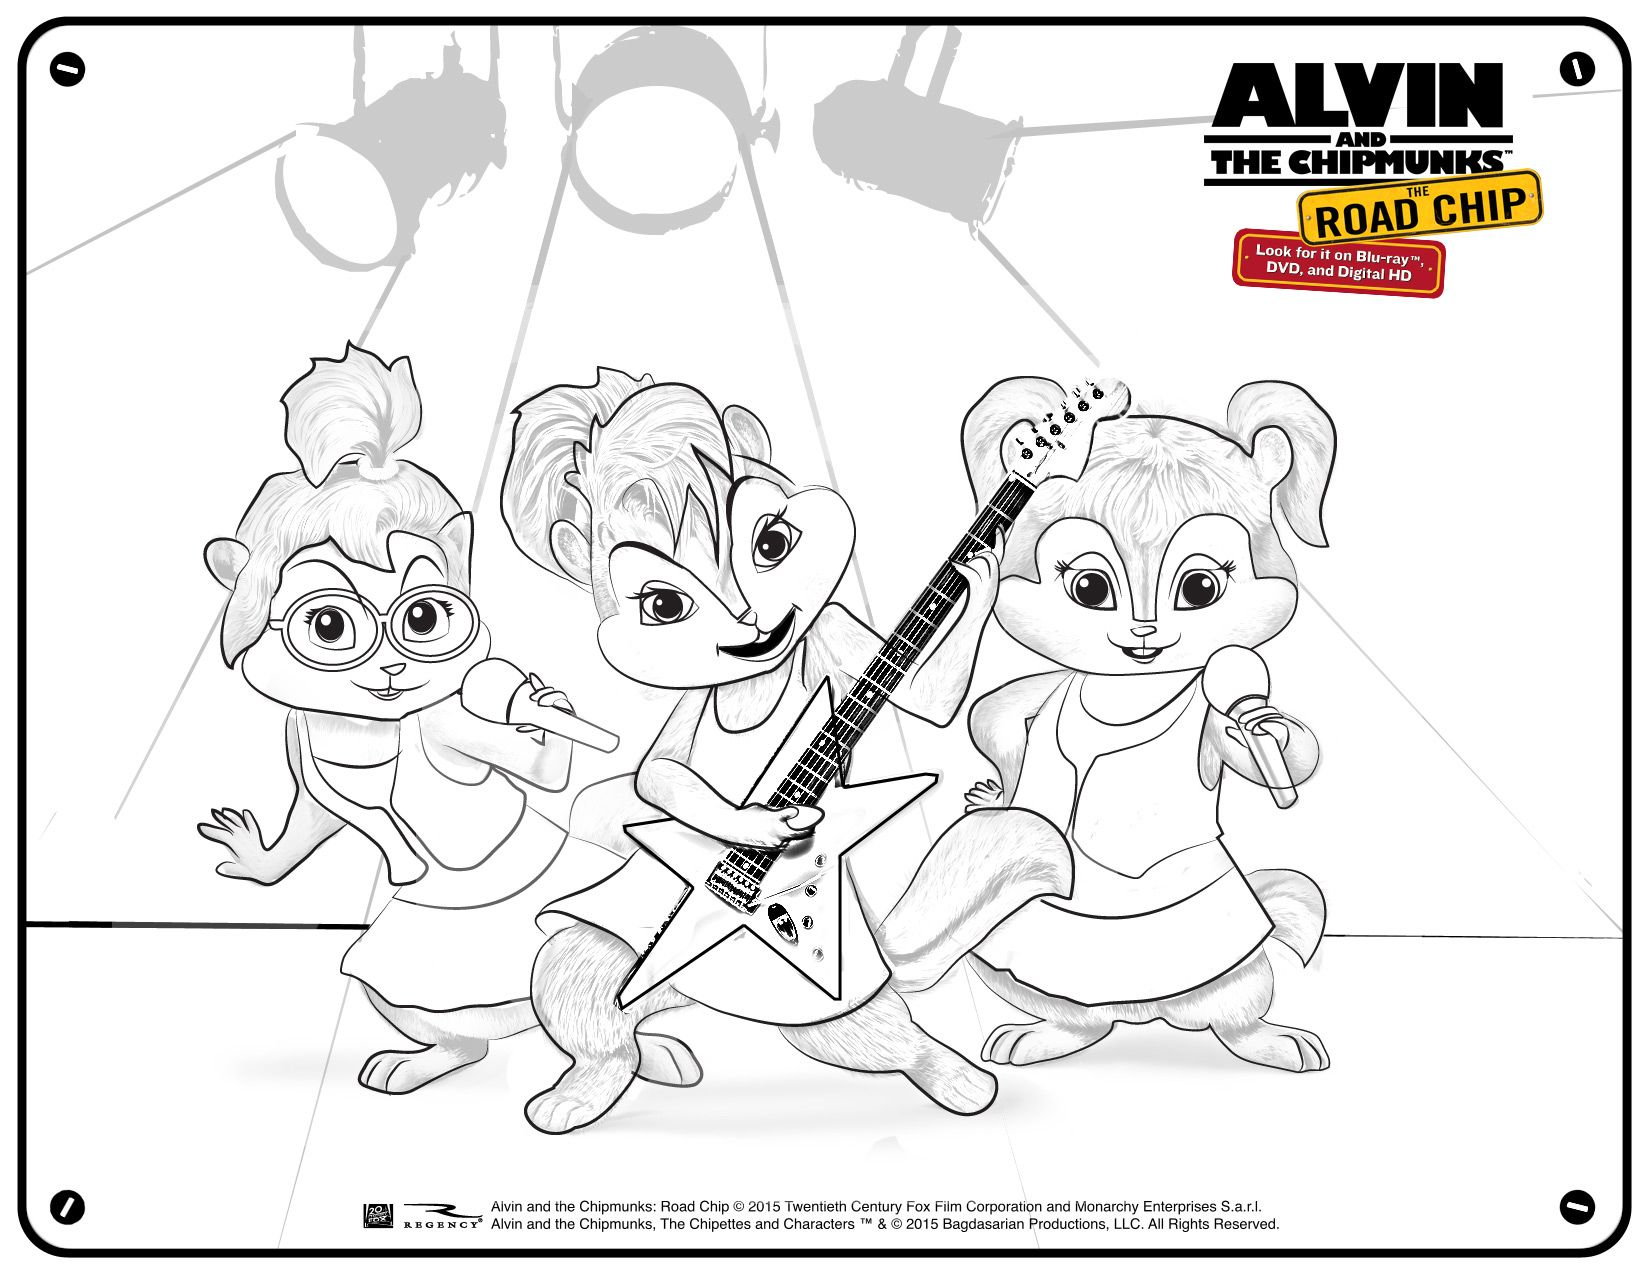 Pin by LMI KIDS on Alvin & the Chipmunks | Pinterest | Chipmunks